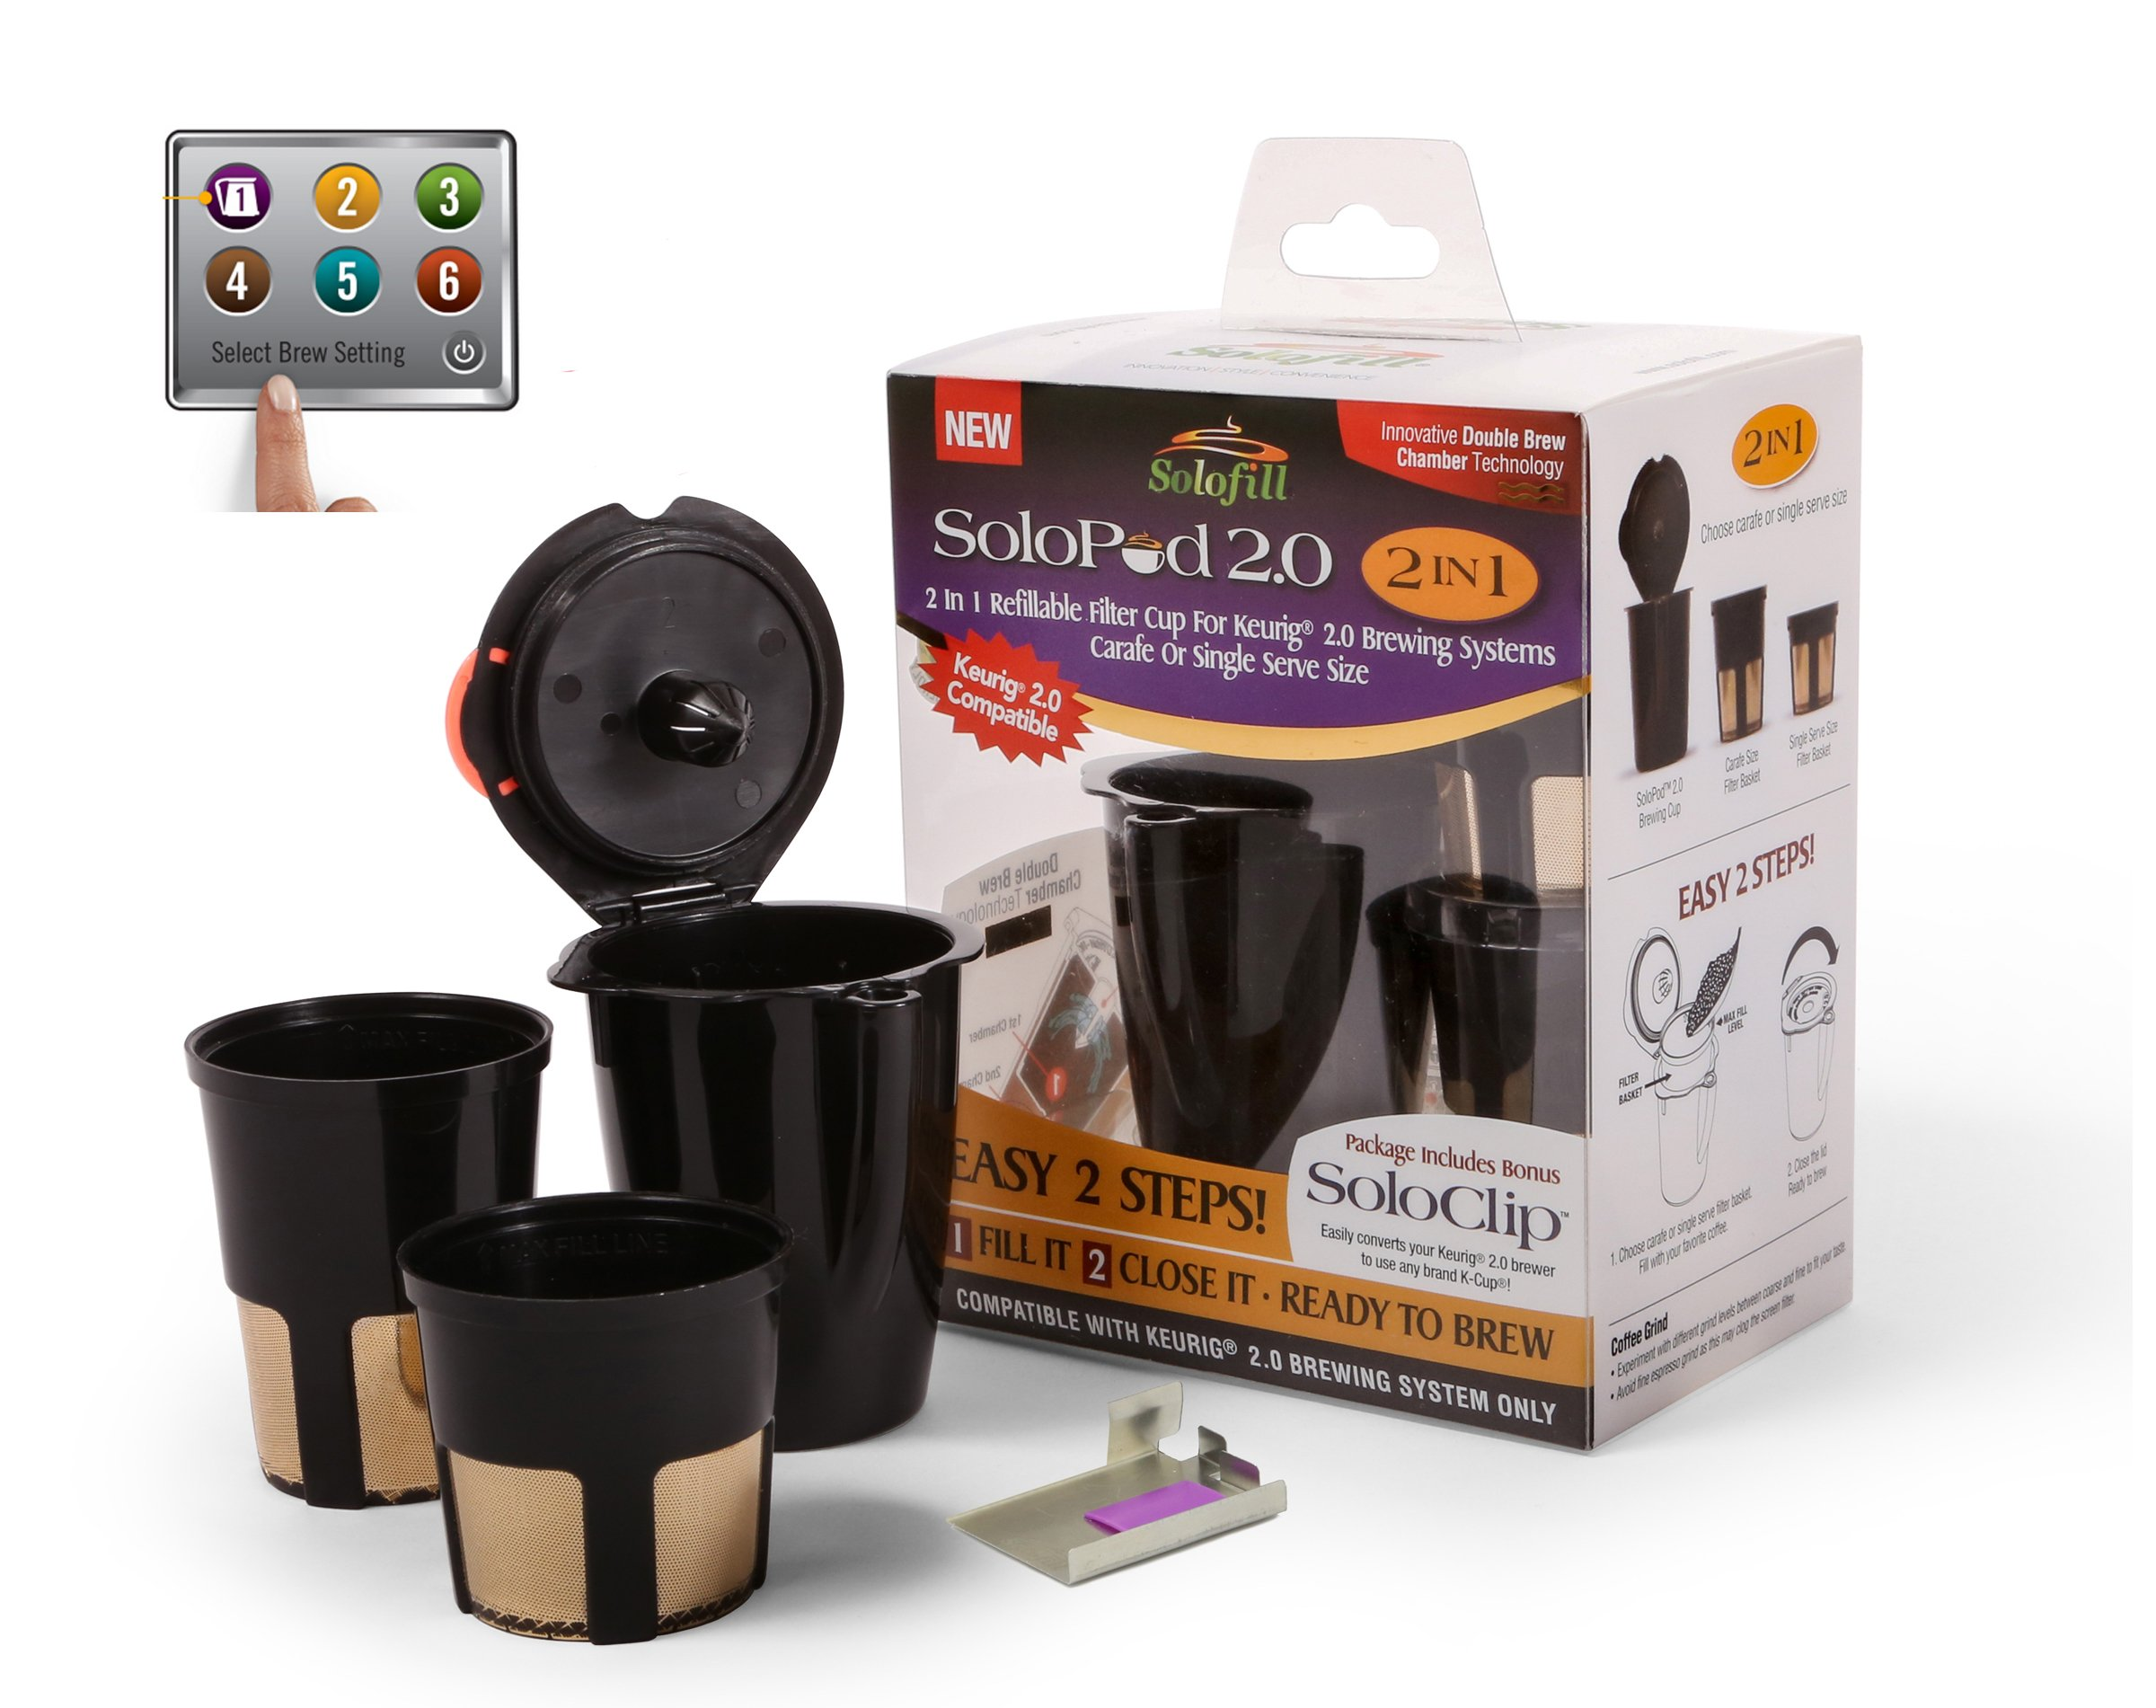 SOLOFILL 2.0 2in1 Refillable Filter Cup for Keurig 2.0 K200, K300, K400, K500 and PLUS Series carafe or single serve size (Full Menu)